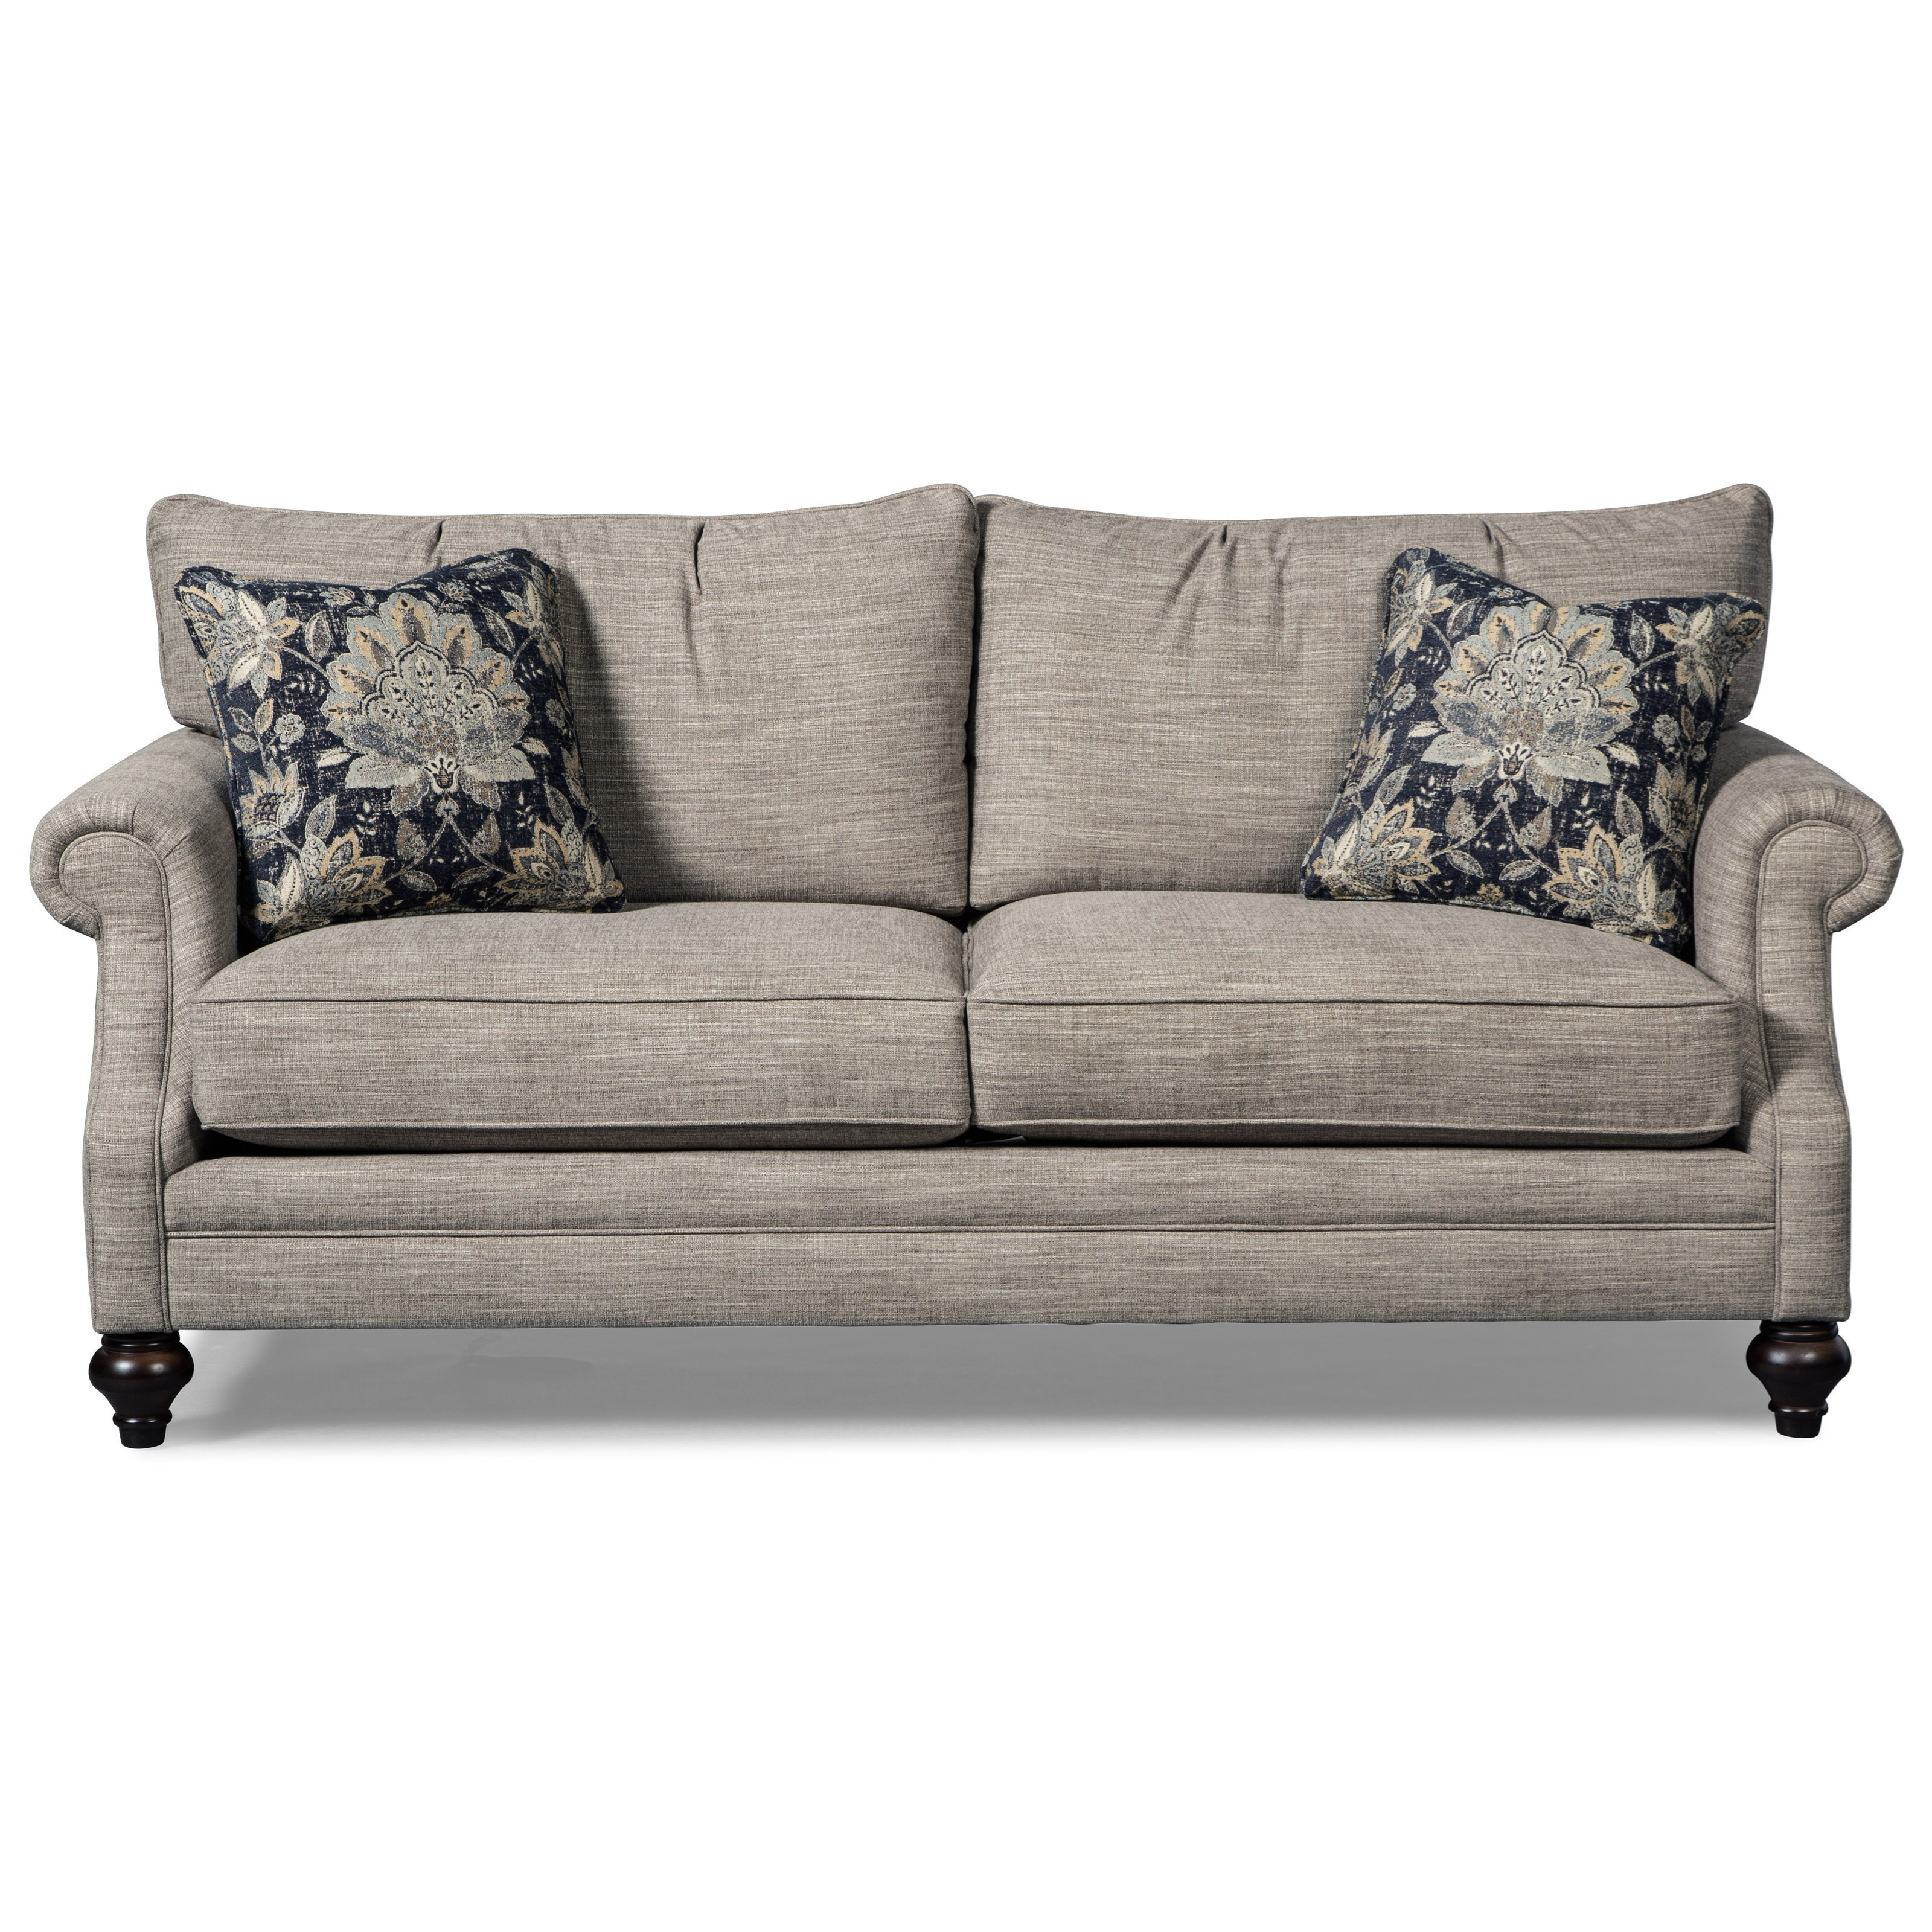 Craftmaster 7669 Rolled Arm Sofa With Traditional Turned Legs